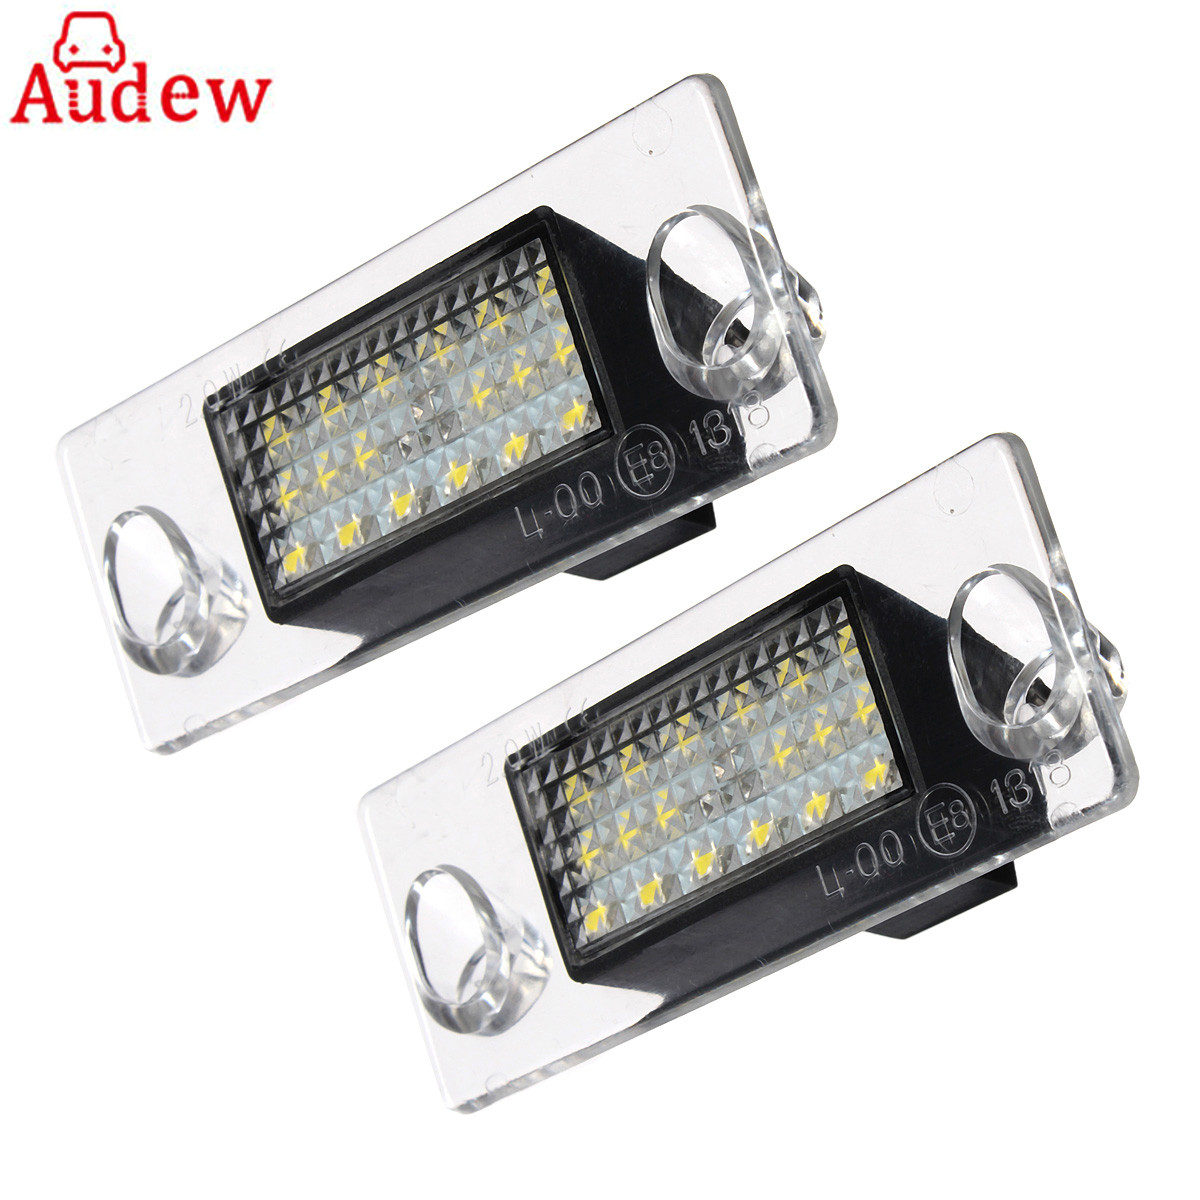 2Pcs Car LED License Plate Light 12V  LED Number Plate Lamp Error Free For Audi A4 S4 B5 98-01 White 2x e marked obc error free 24 led white license number plate light lamp for bmw e81 e82 e90 e91 e92 e93 e60 e61 e39 x1 e84